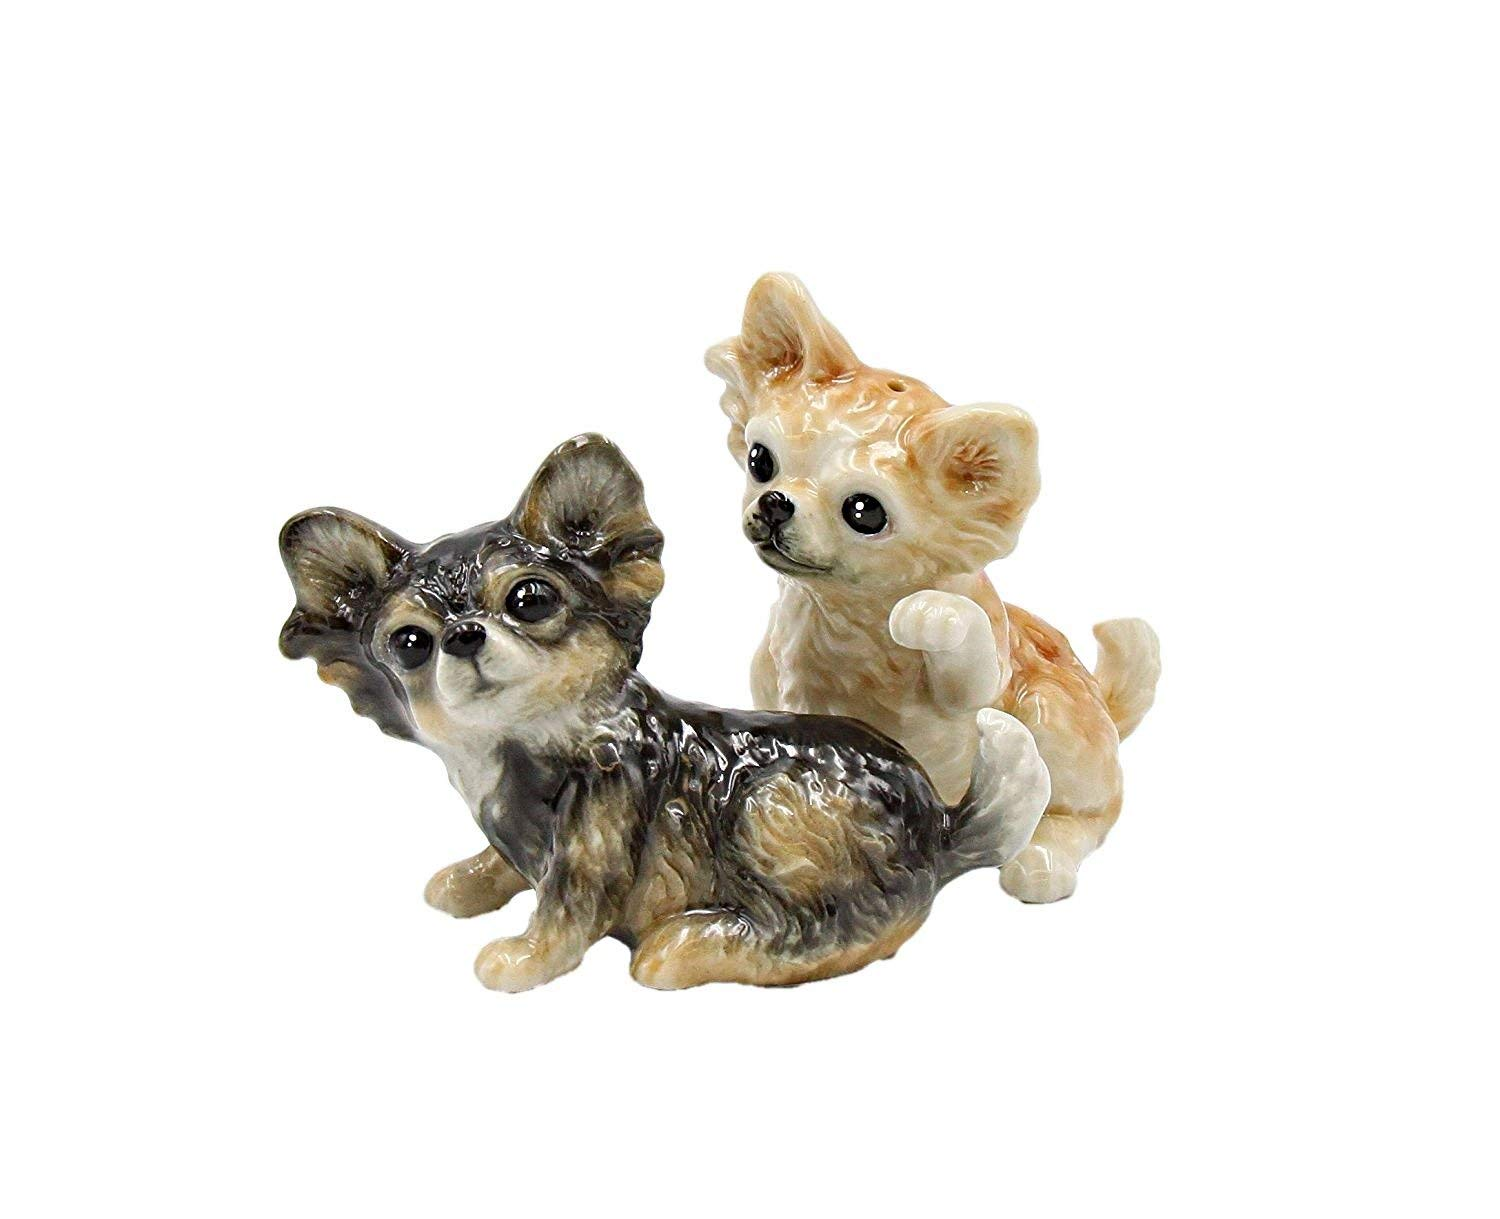 """Cosmos Gifts 20774 Fine Porcelain Chihuahua Dog Salt and Pepper Shakers Set, 3-1/2"""" L"""